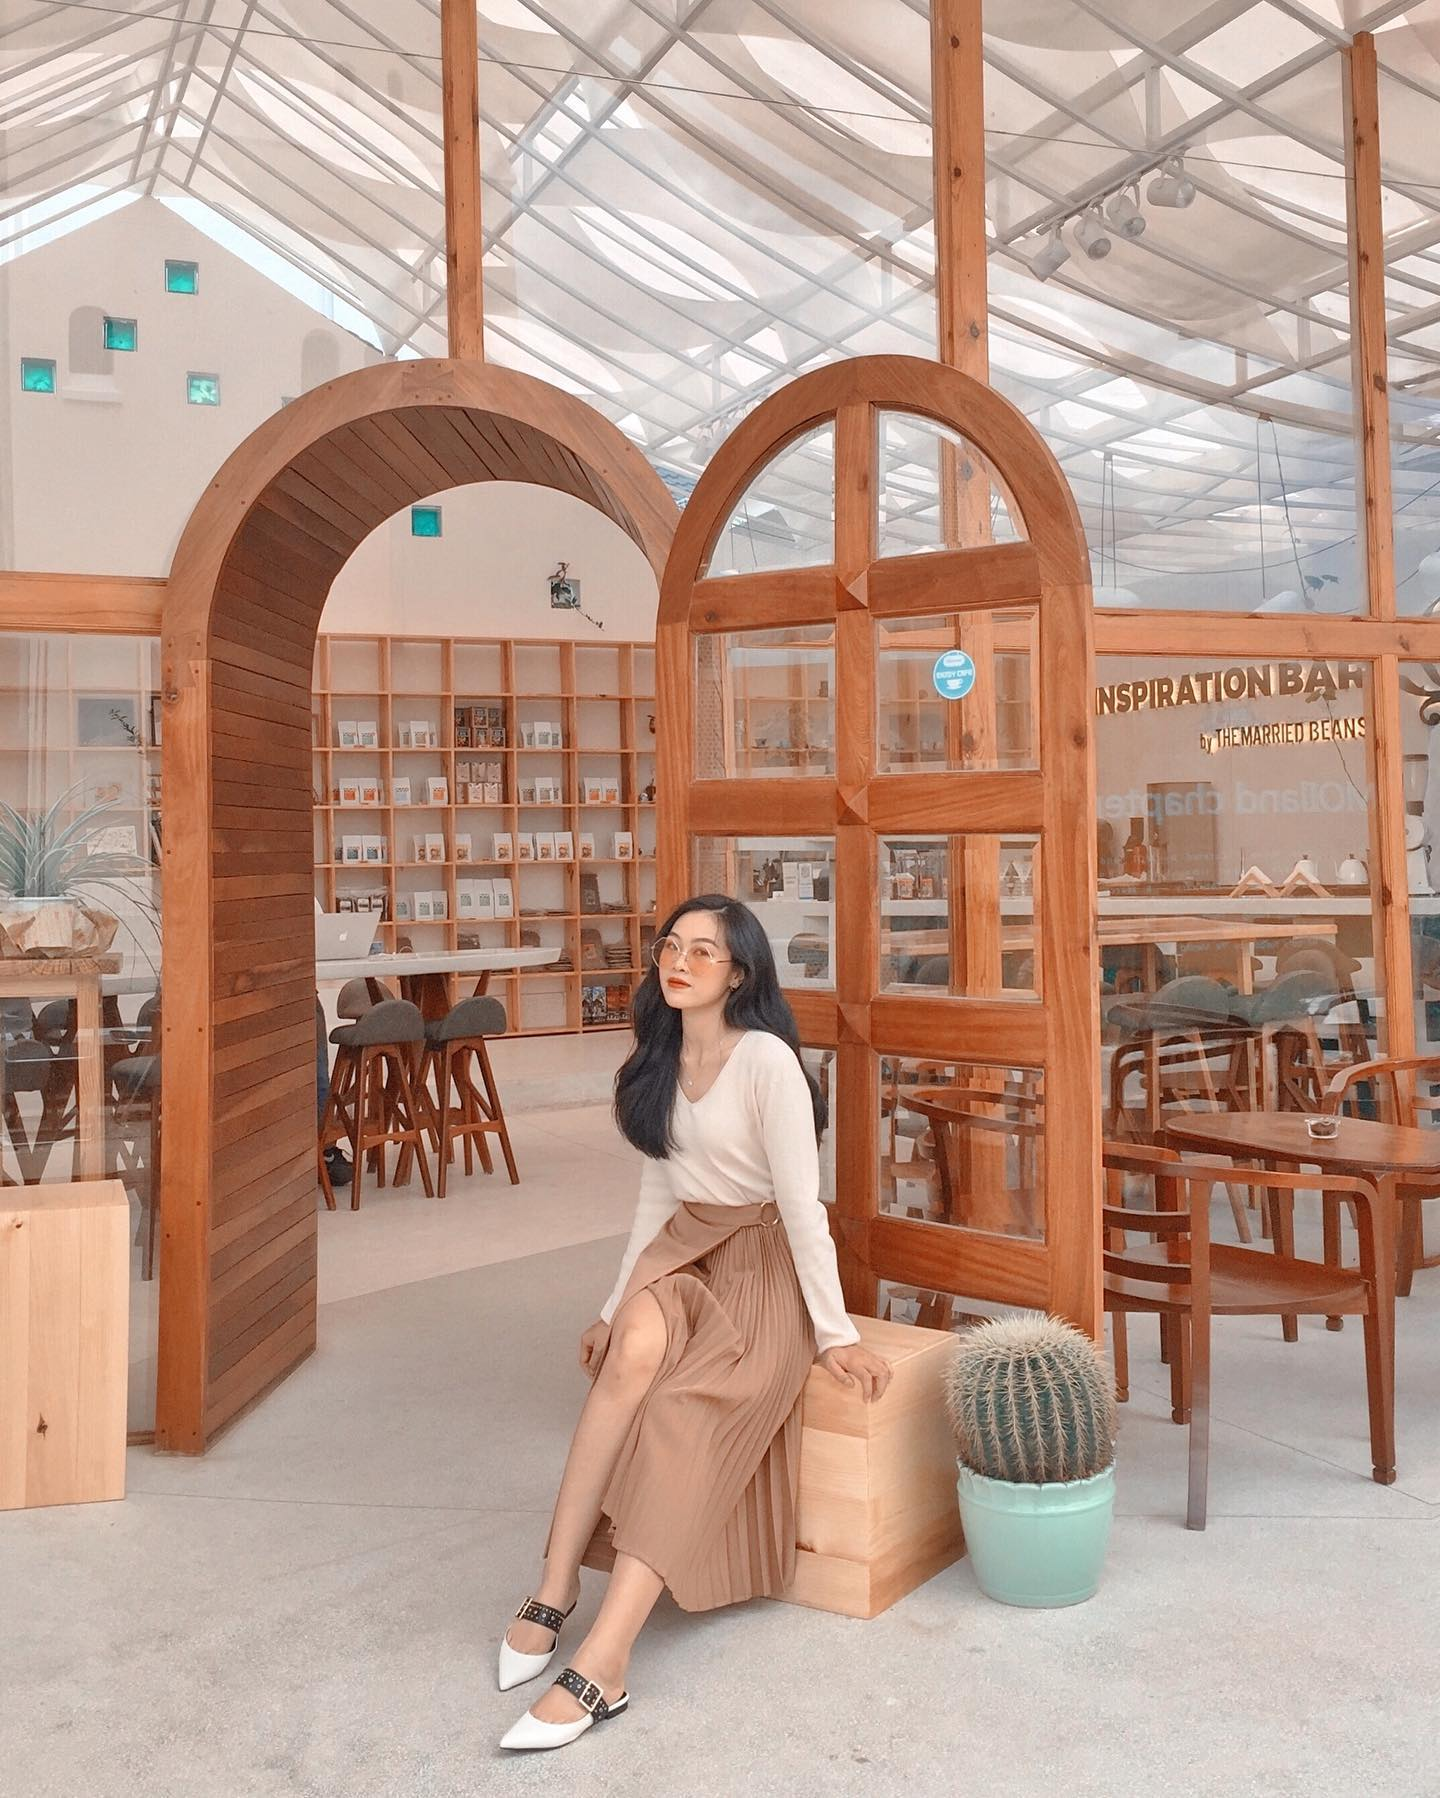 da-lat-the-married-beans-workspace-6